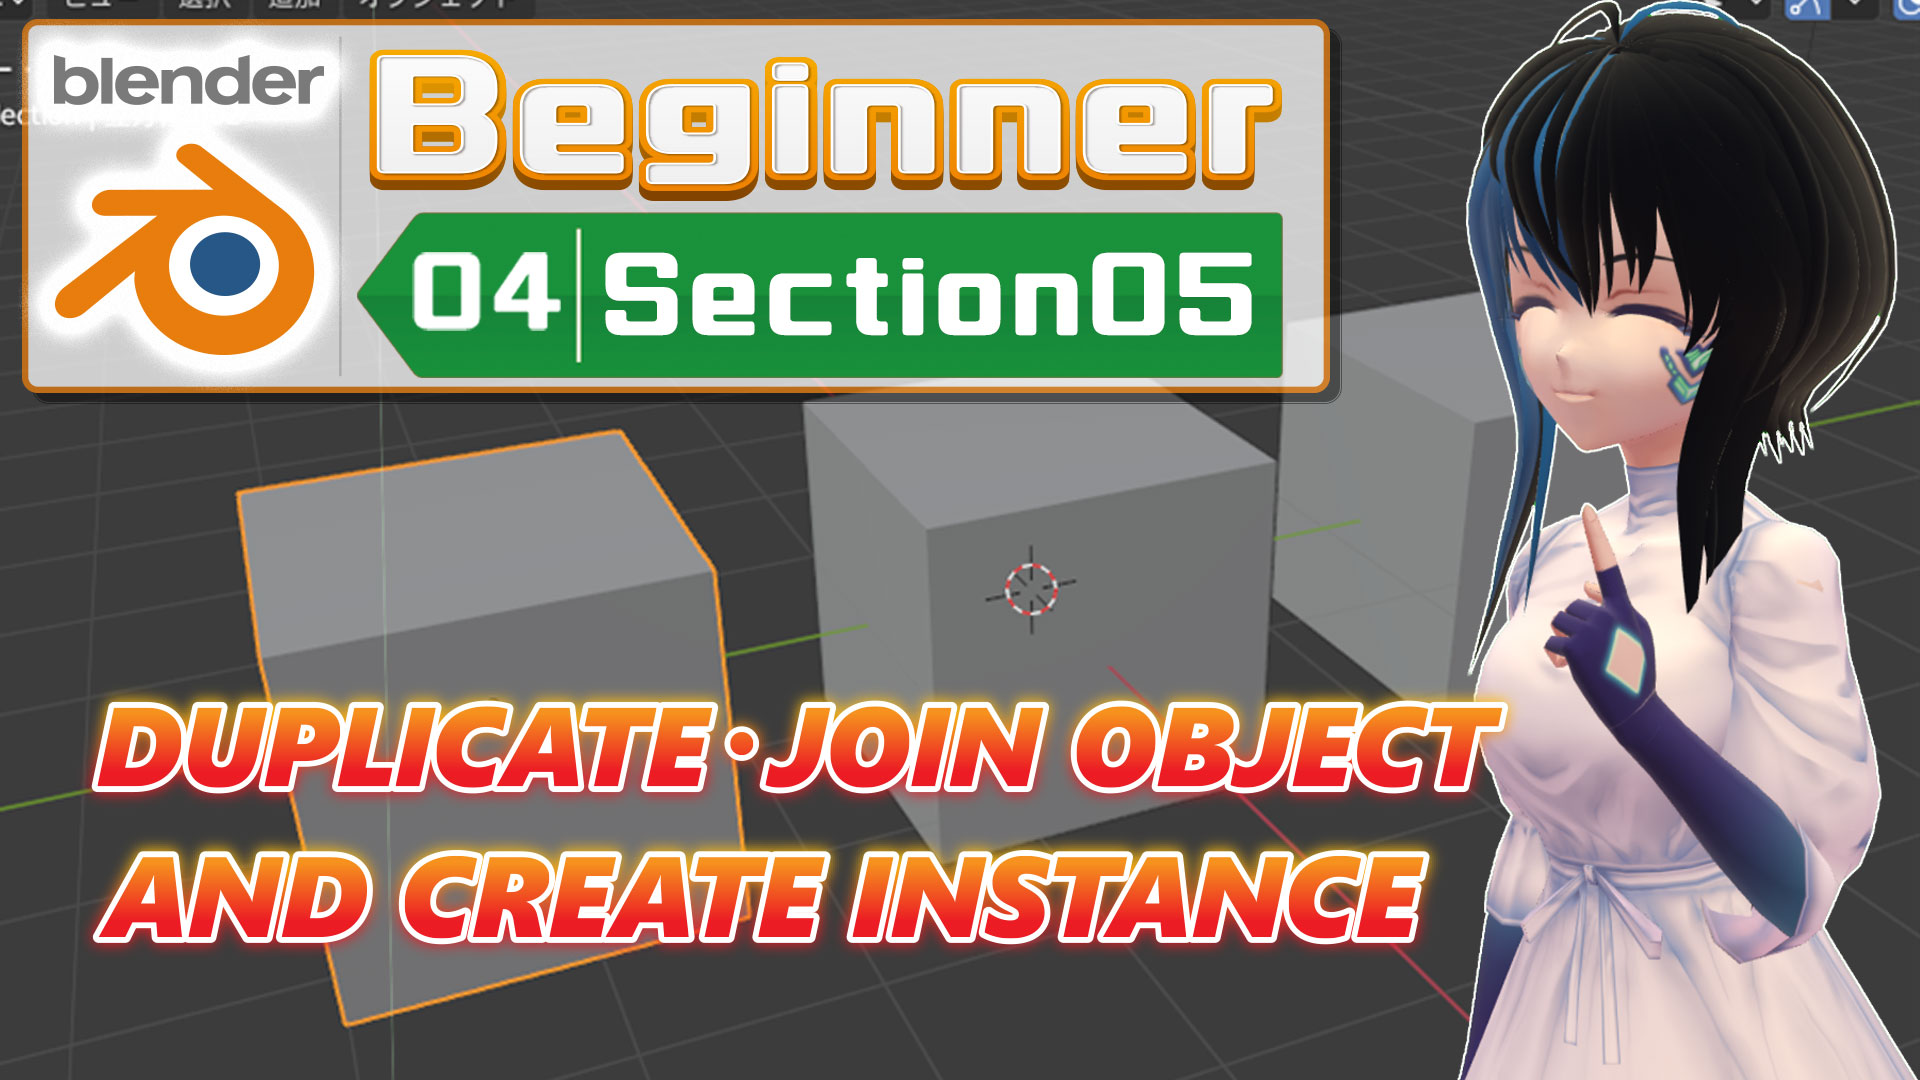 DUPLICATE /JOIN OBJECT AND CREATE INSTANCE